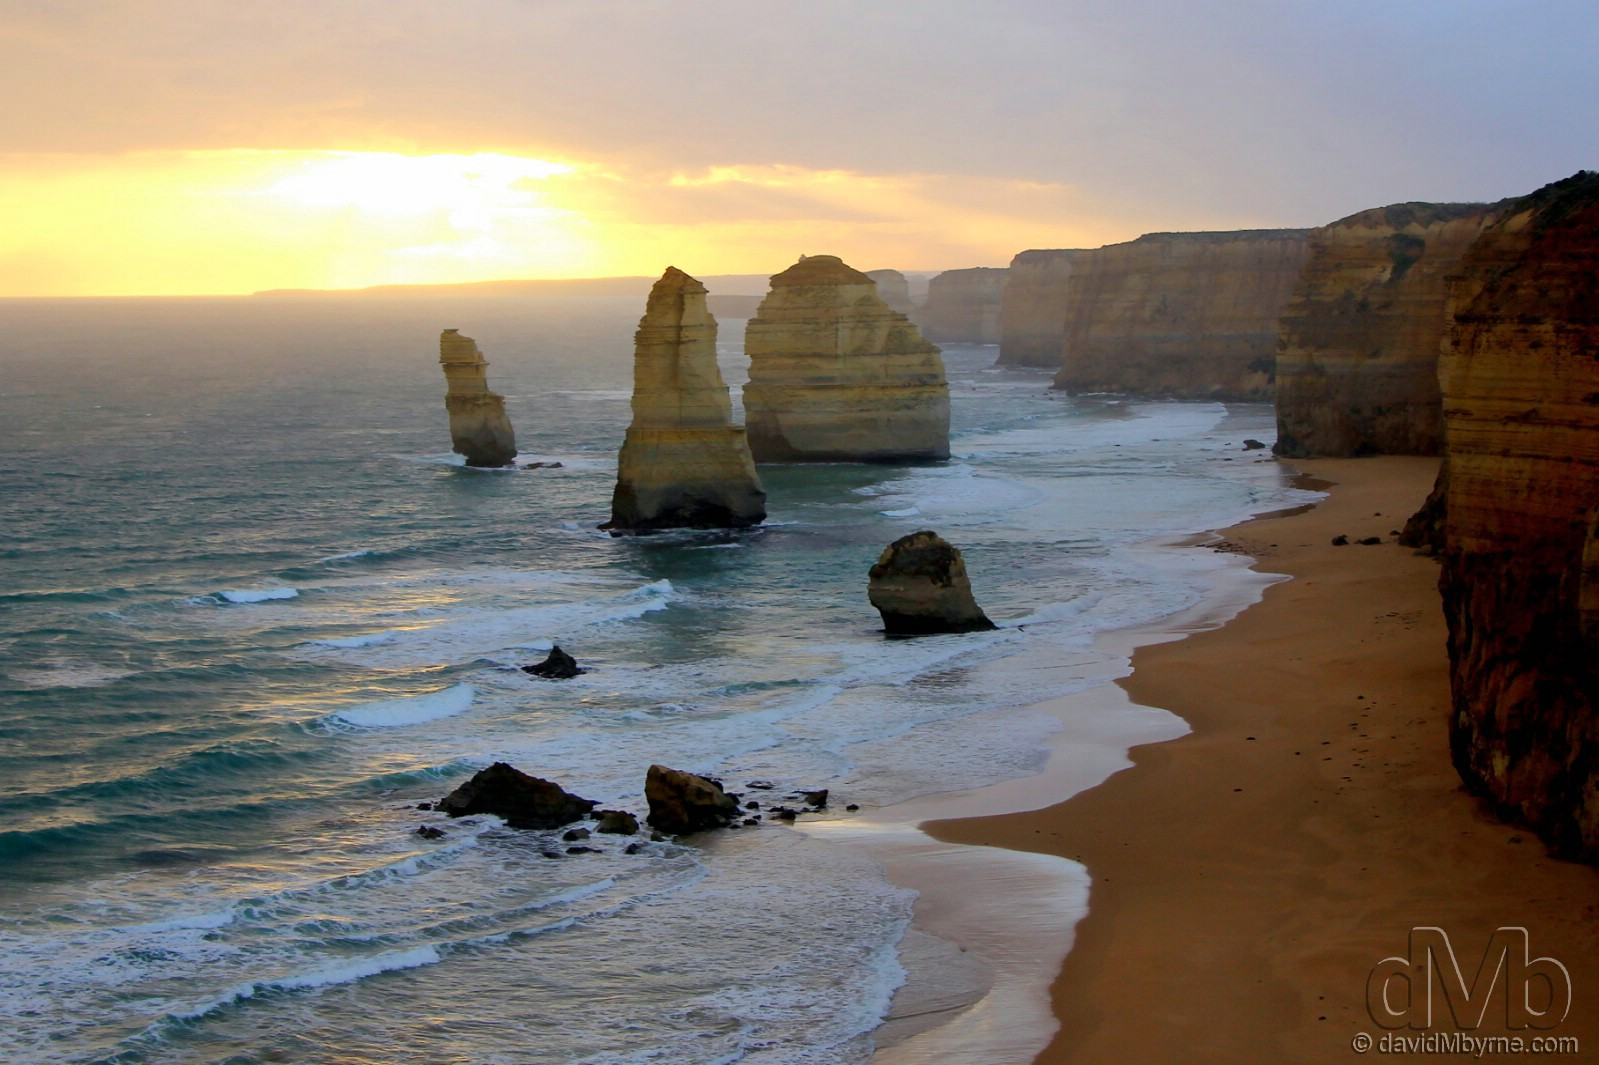 The Twelve Apostles of the Great Ocean Road, Victoria, Australia. April 22nd, 2012.